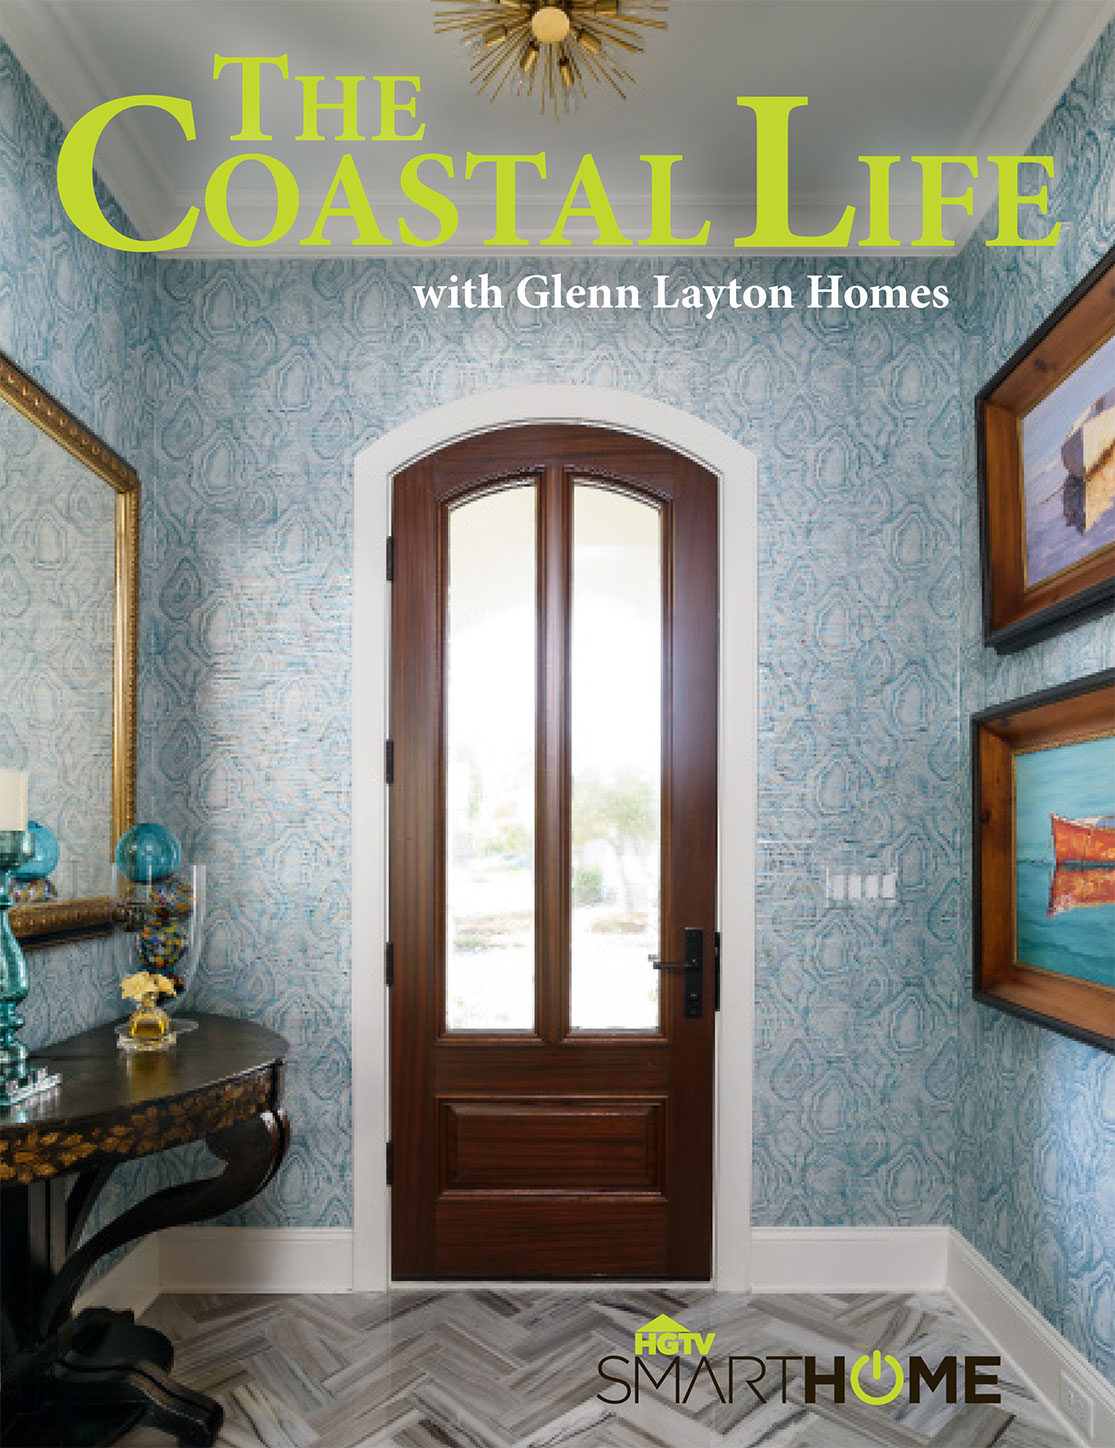 The Coastal Life Magazine - Glenn Layton Homes